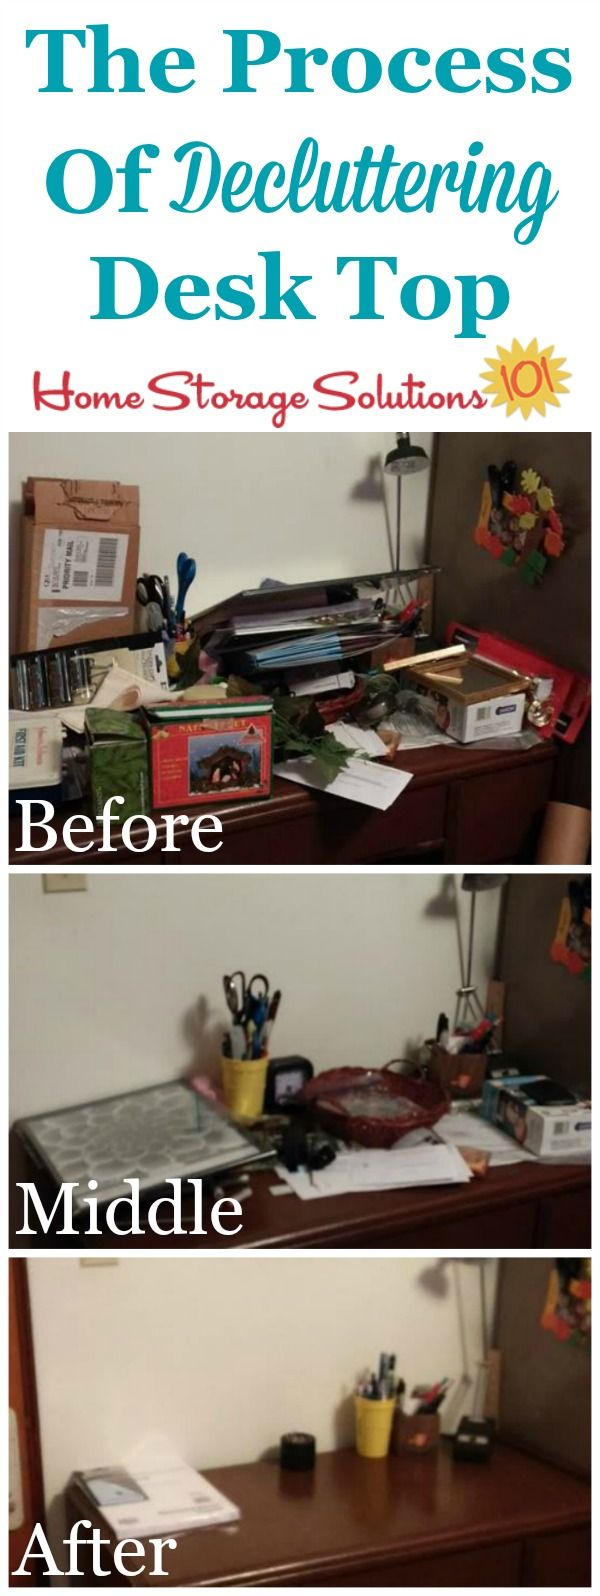 Progression from beginning to the end of the decluttering process when clearing of desk top, sent in by a reader Karen {featured on Home Storage Solutions 101}